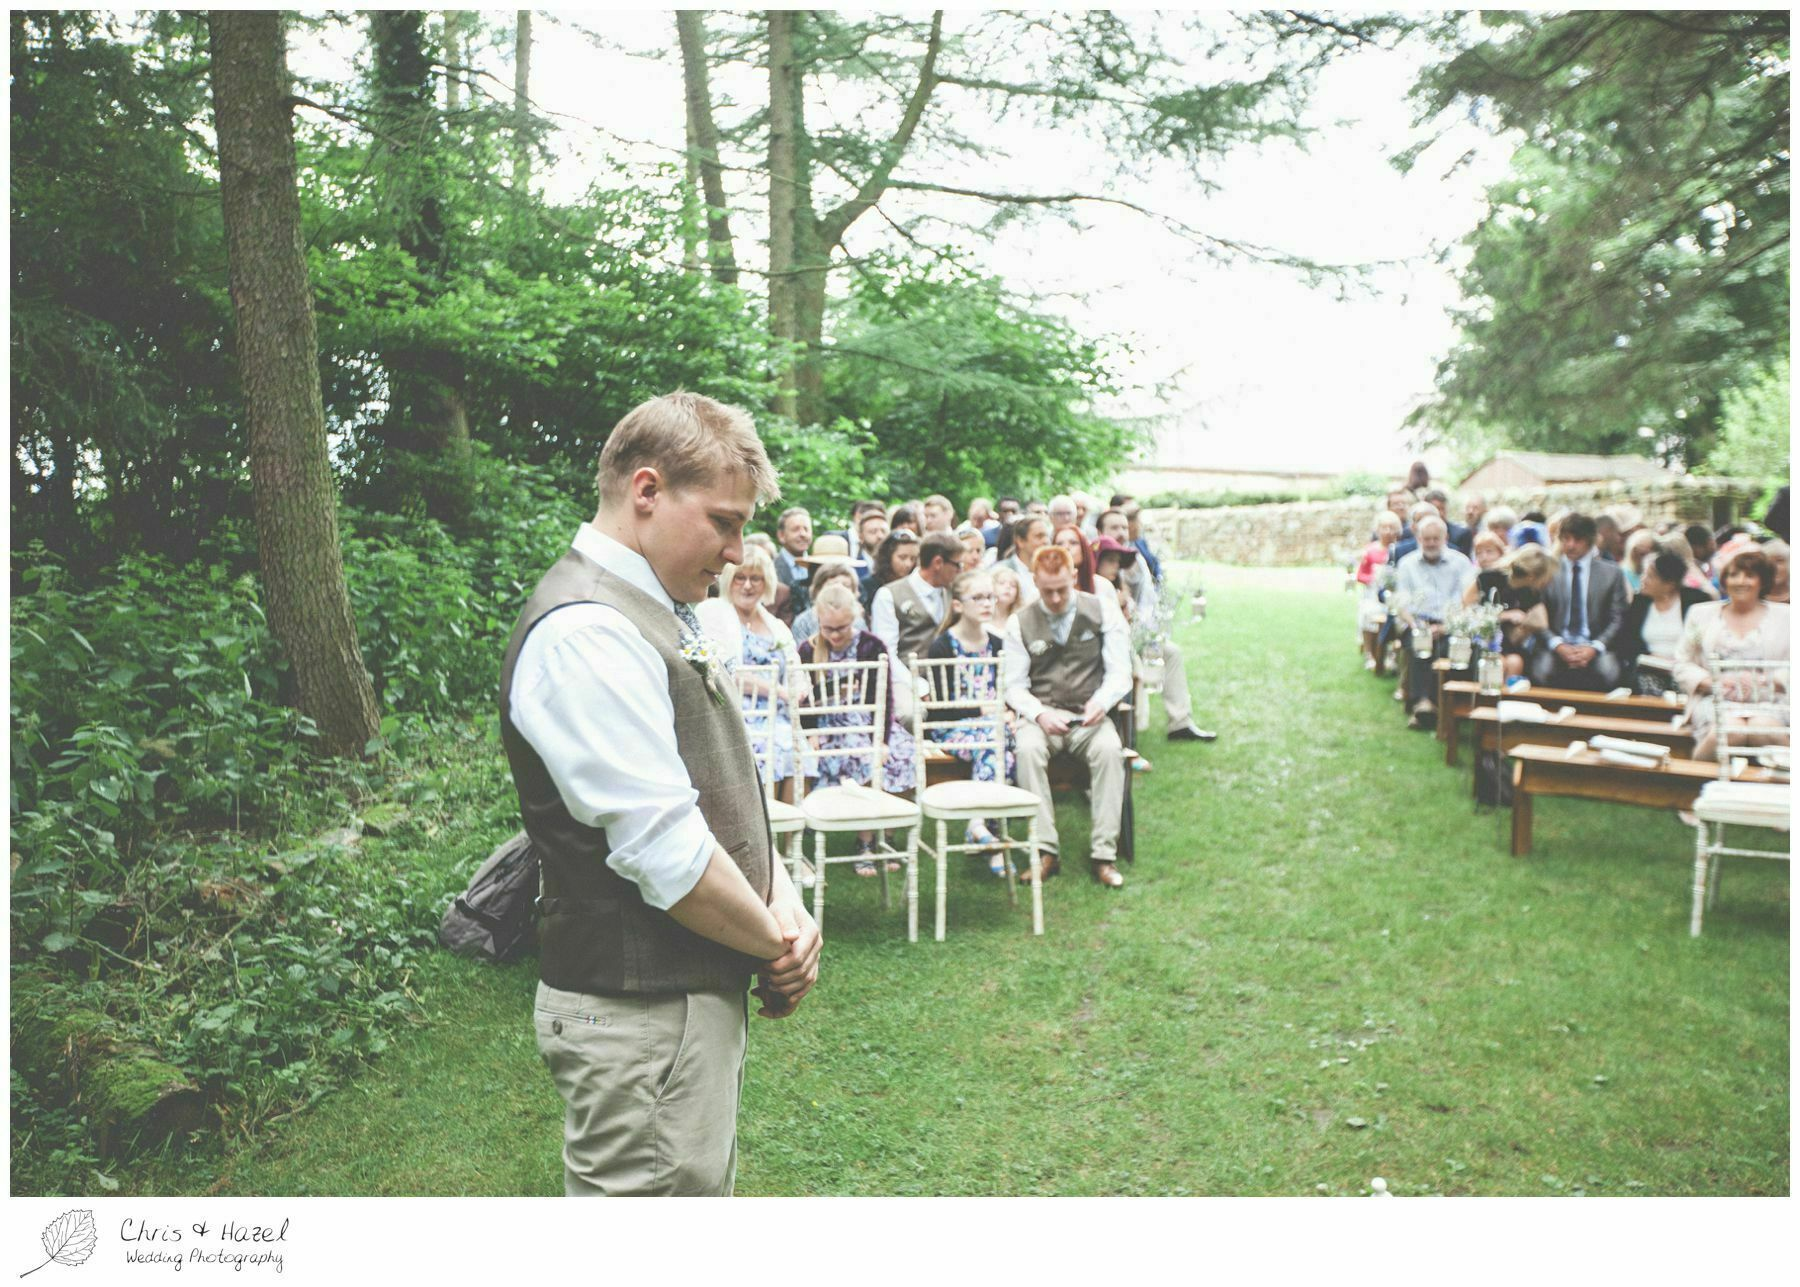 groom waiting for bride, woodland, forest, ceremony, outdoor, forest wedding, woodland wedding, eco wedding, love letters, wedding, Eccup Wedding Photographer, Lineham Farm, Wedding Photography Leeds, Chris and Hazel Wedding Photography, Richard Wyatt, Laura Kelly